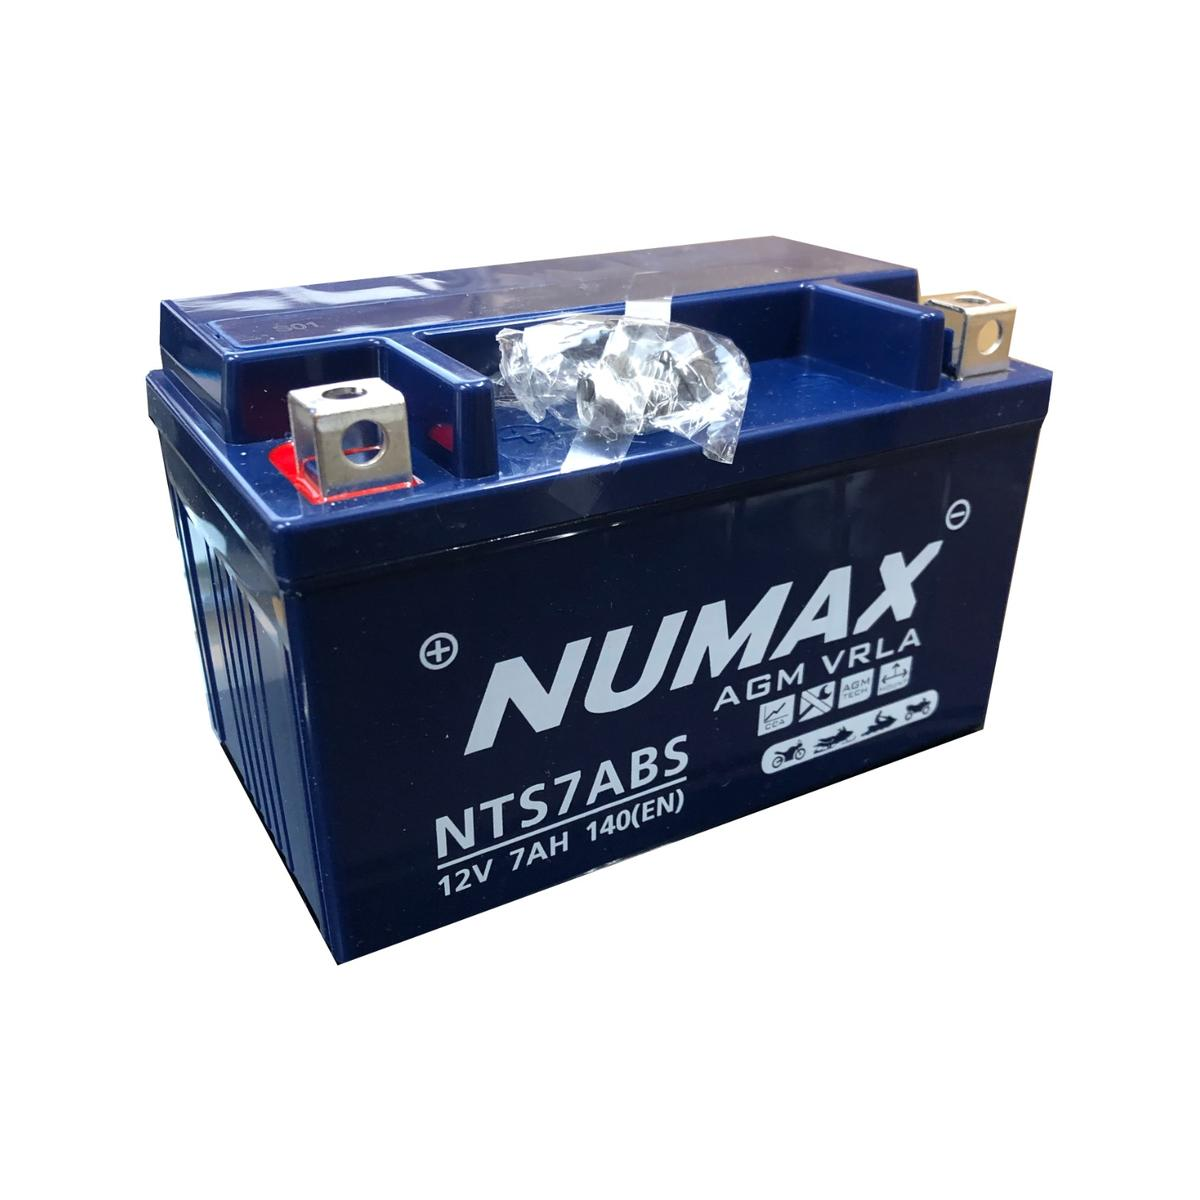 Numax NTS7ABS 12v Motorbike Bike Battery KYMCO 100cc AS YTX7A-4